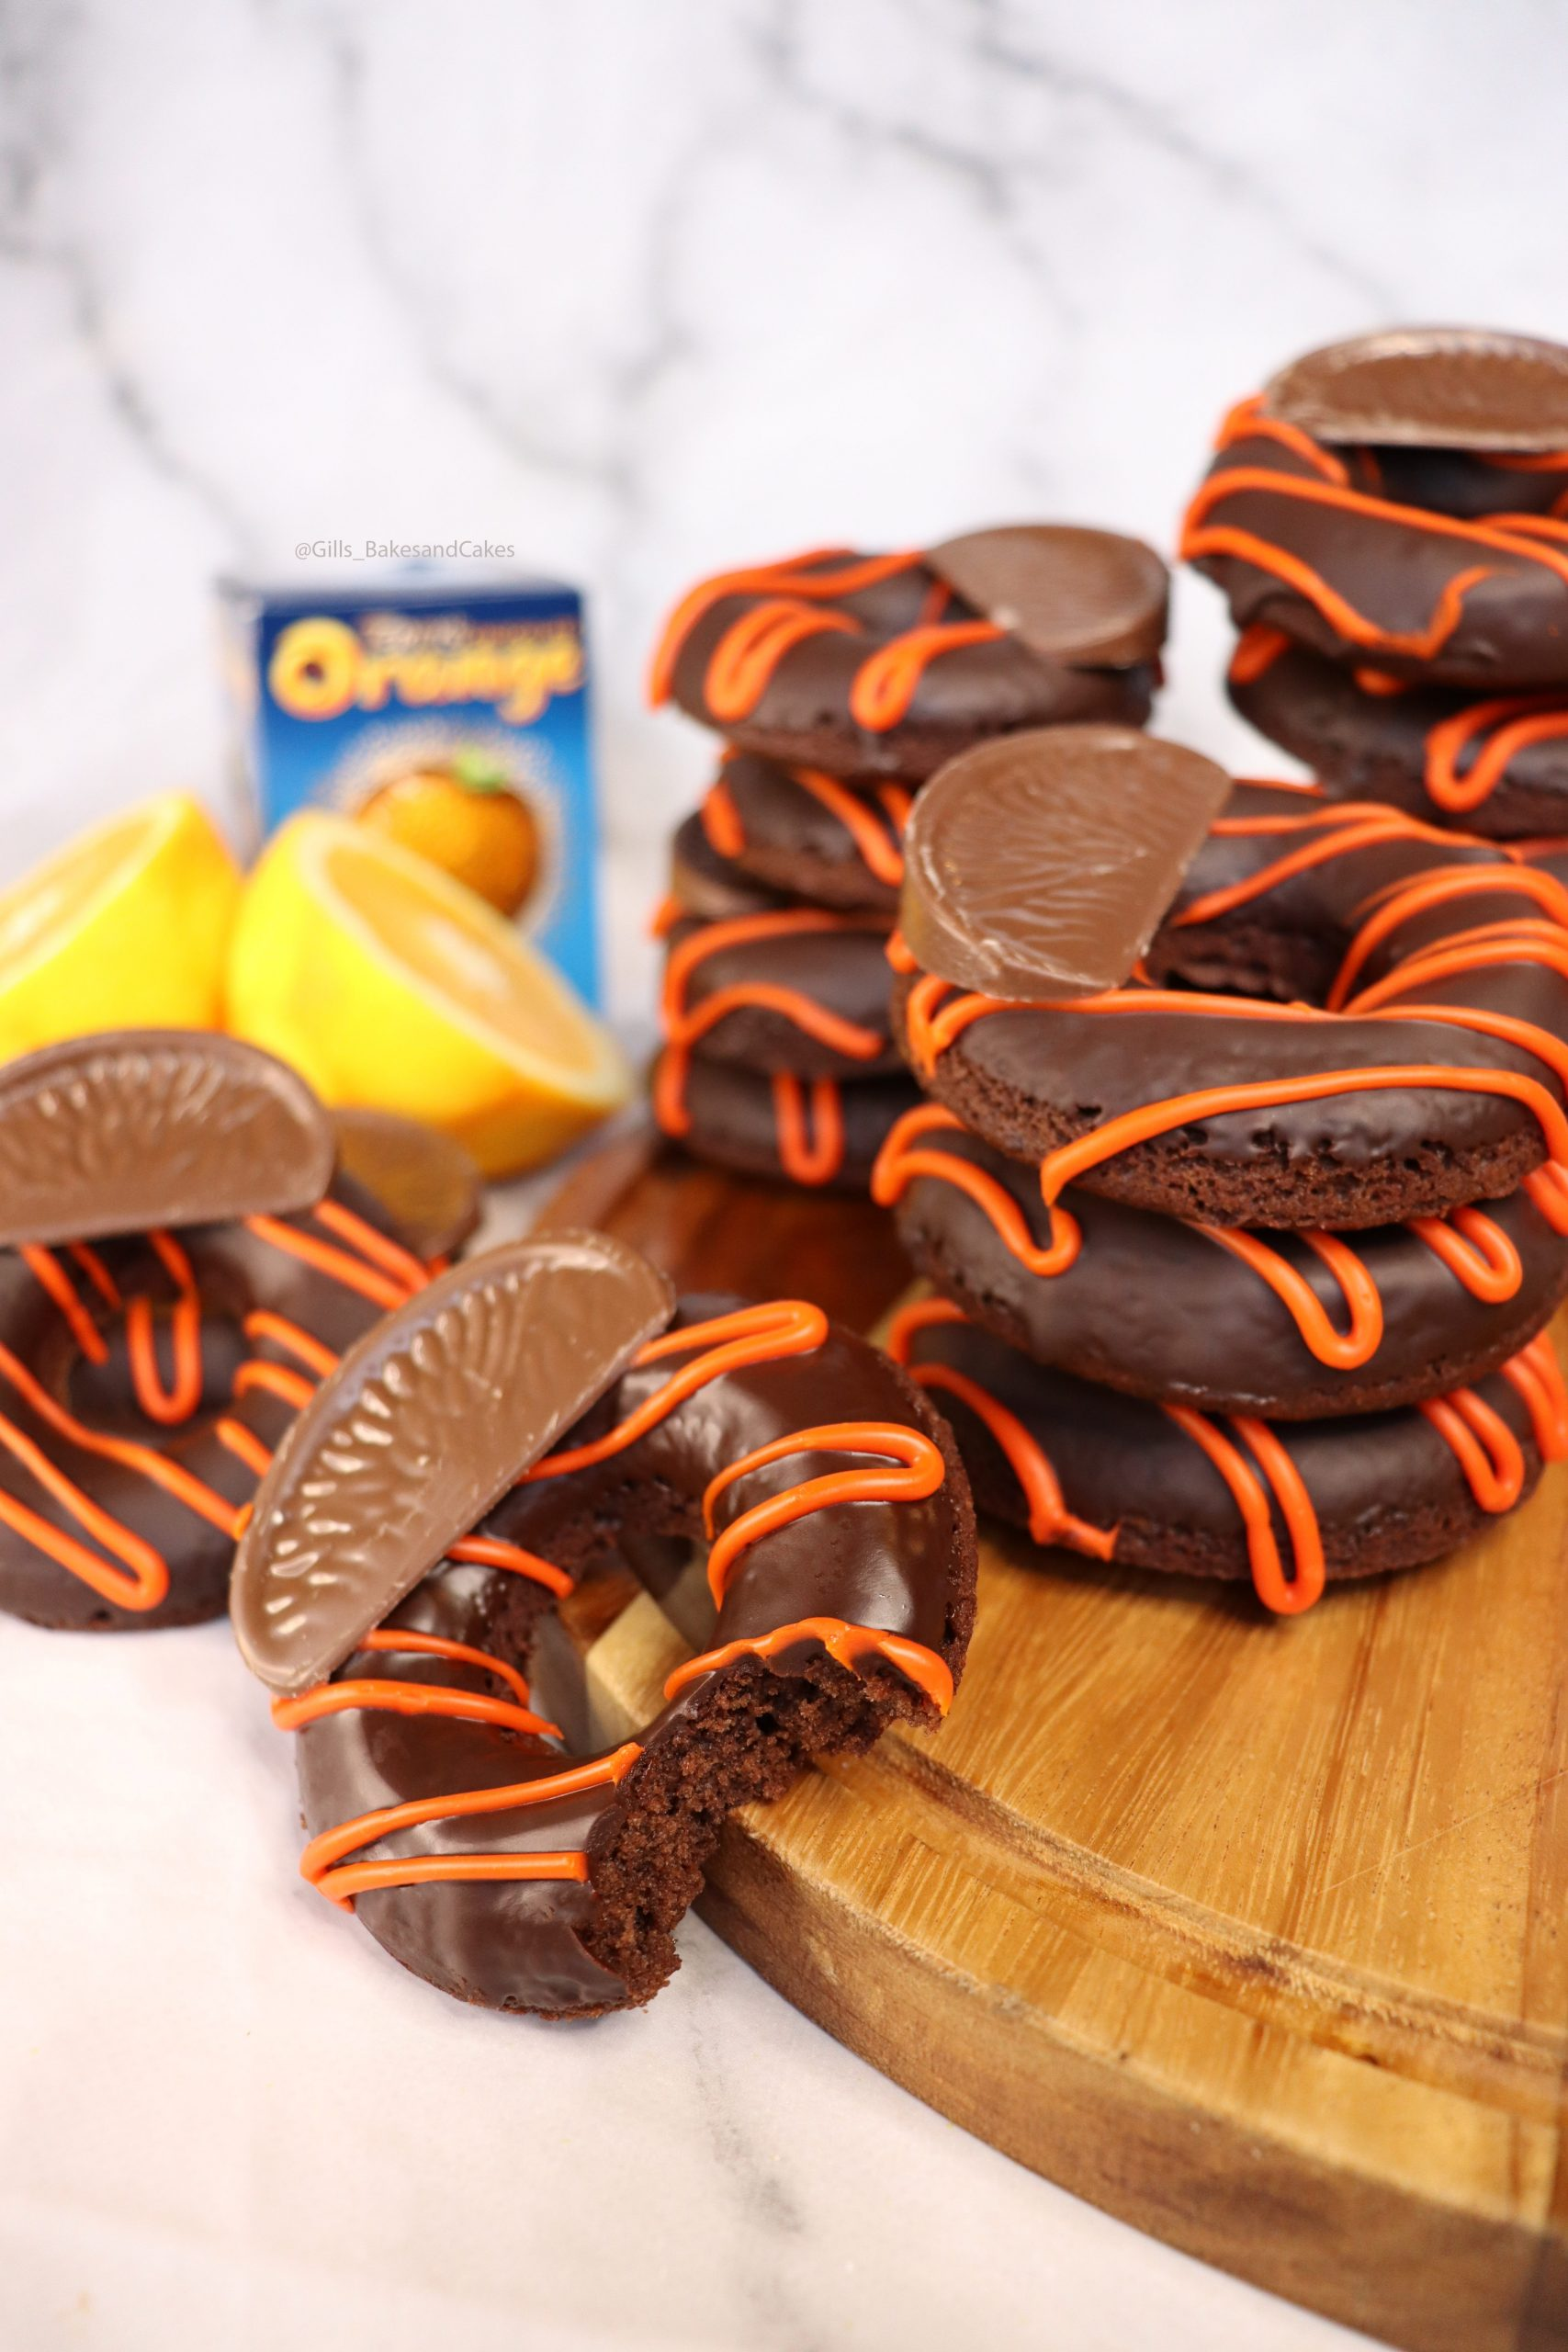 Terrys Chocolate Orange Baked Donuts